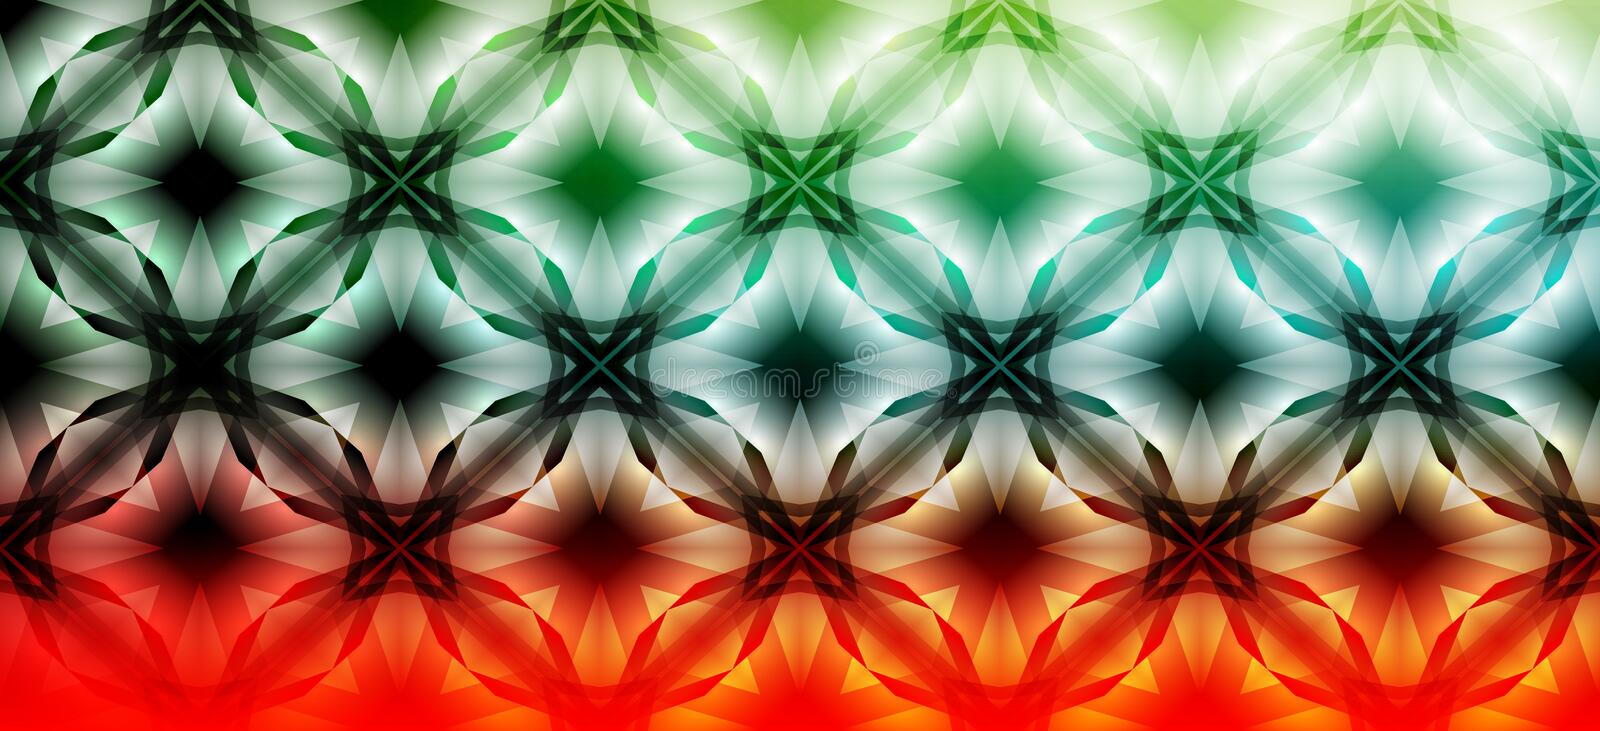 Green and red abstract pattern background vector design stock illustration